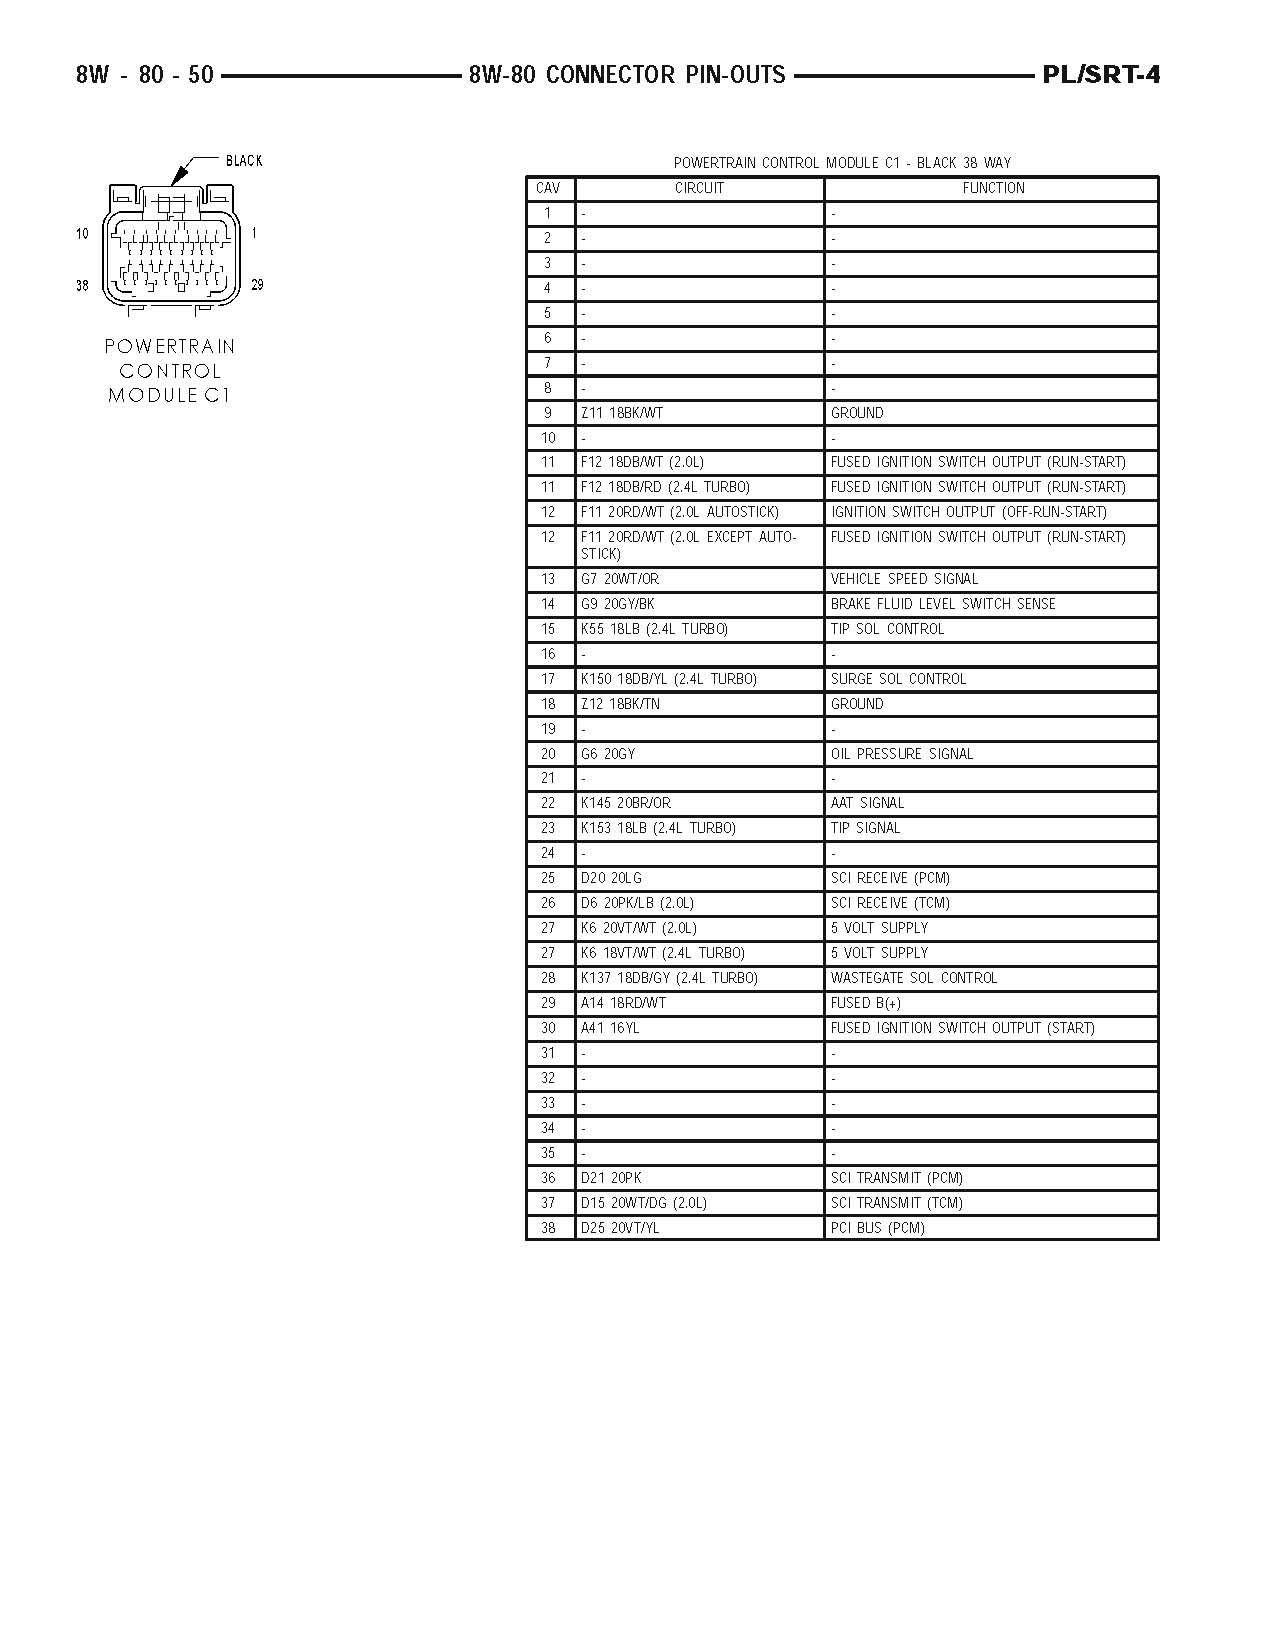 Srt 4 Pcm Wiring Diagram 24 Images Dodge Neon Radio Additionally 2001 Chrysler 300m Stereo 39215d1213145835 Srt4 Ecu Pinout 19079 Pl Intlpdf Page 0815 Forum